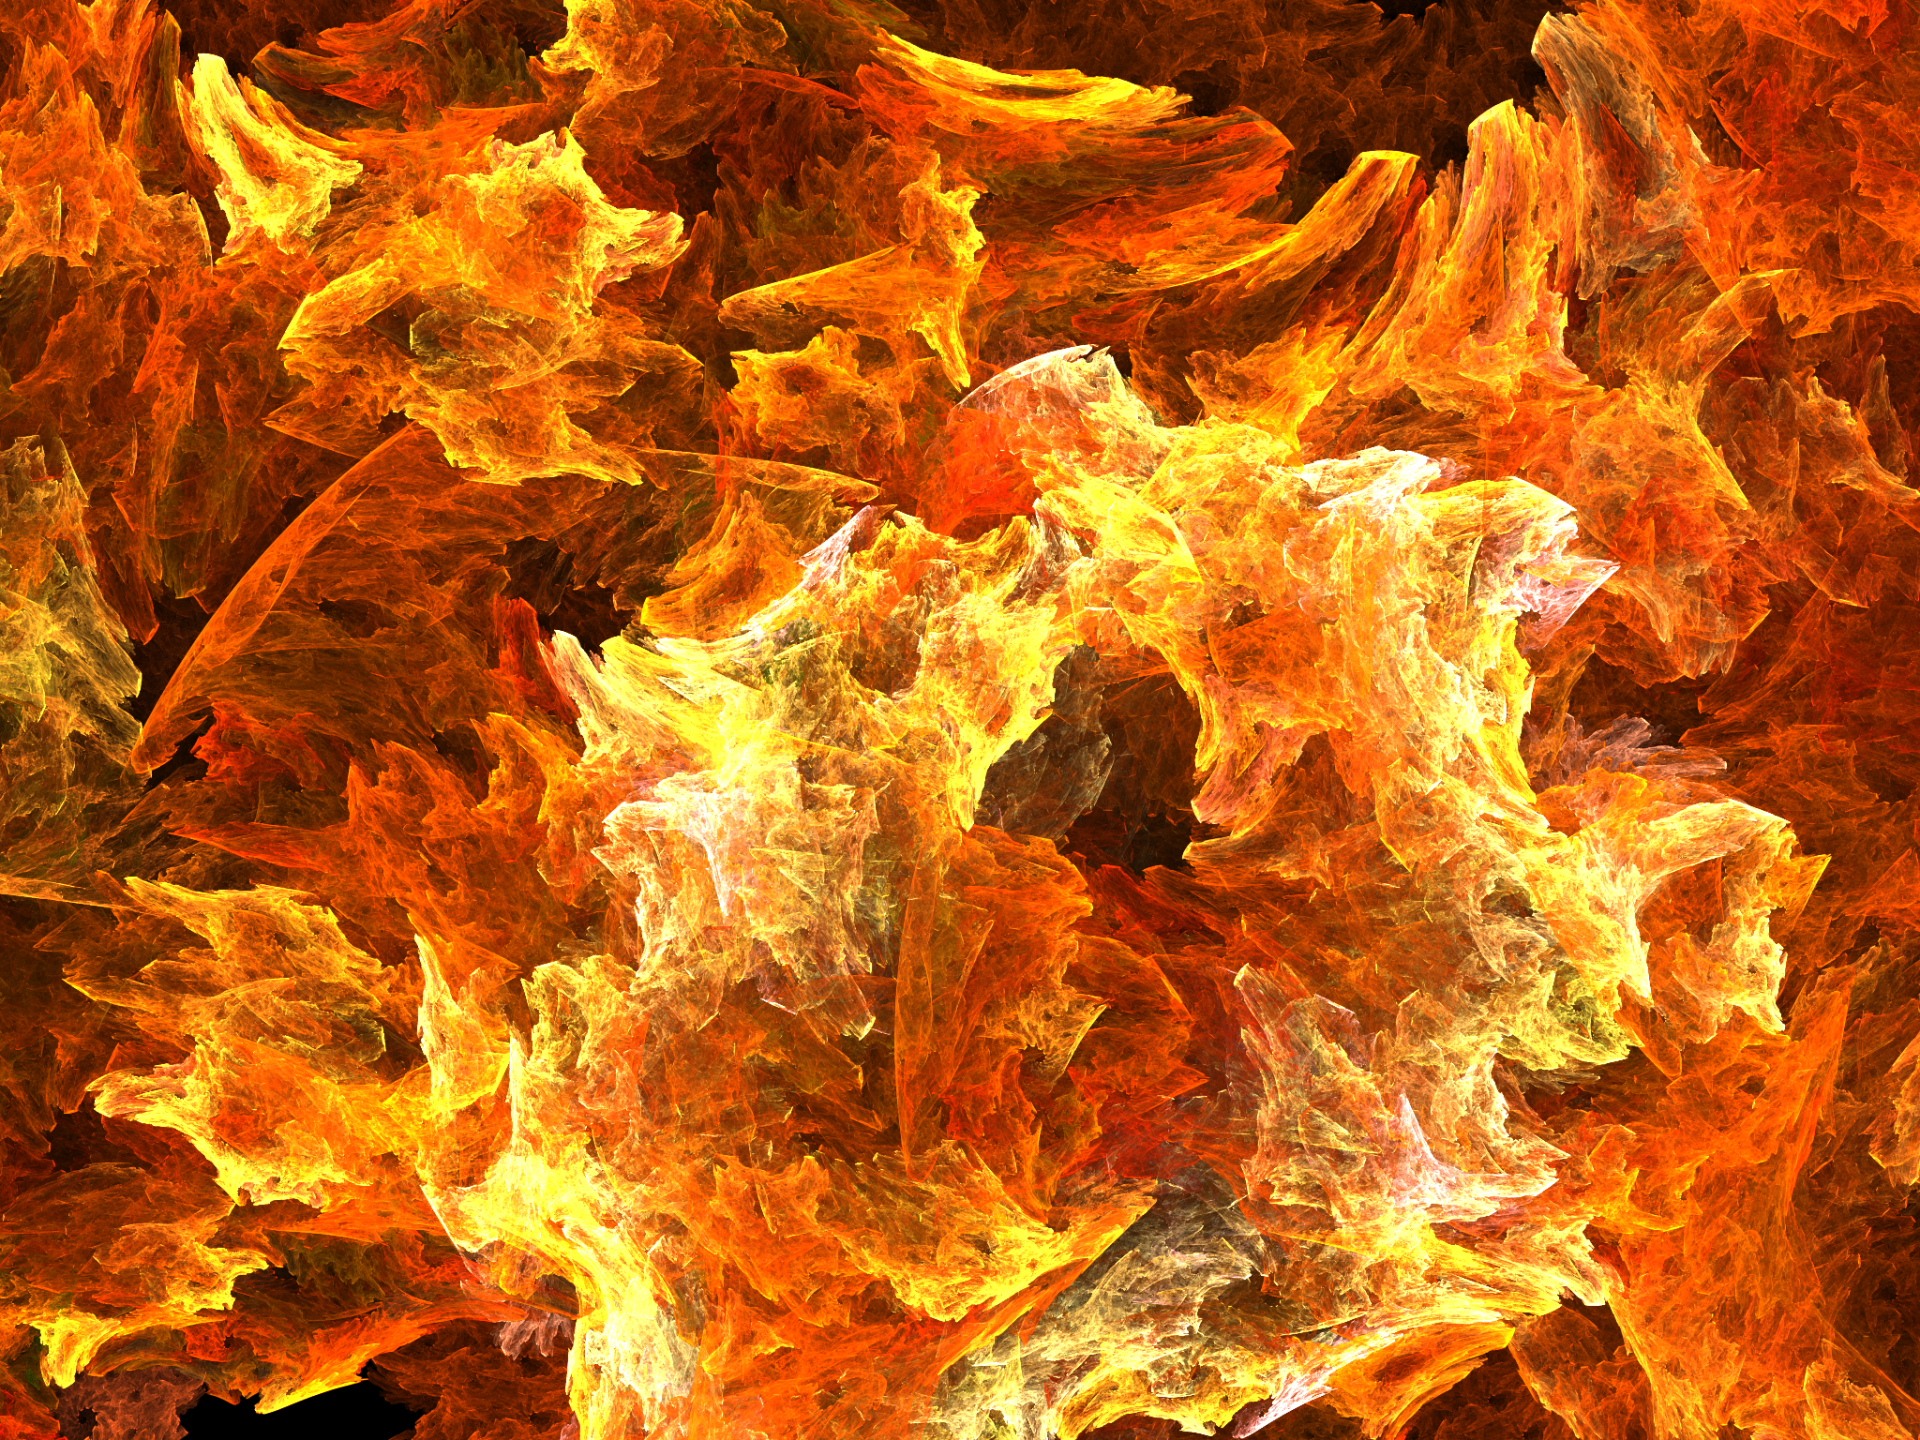 Abstract - Fractal  Apophysis (software) Orange Shapes Digital Art Fire Artistic Abstract Wallpaper